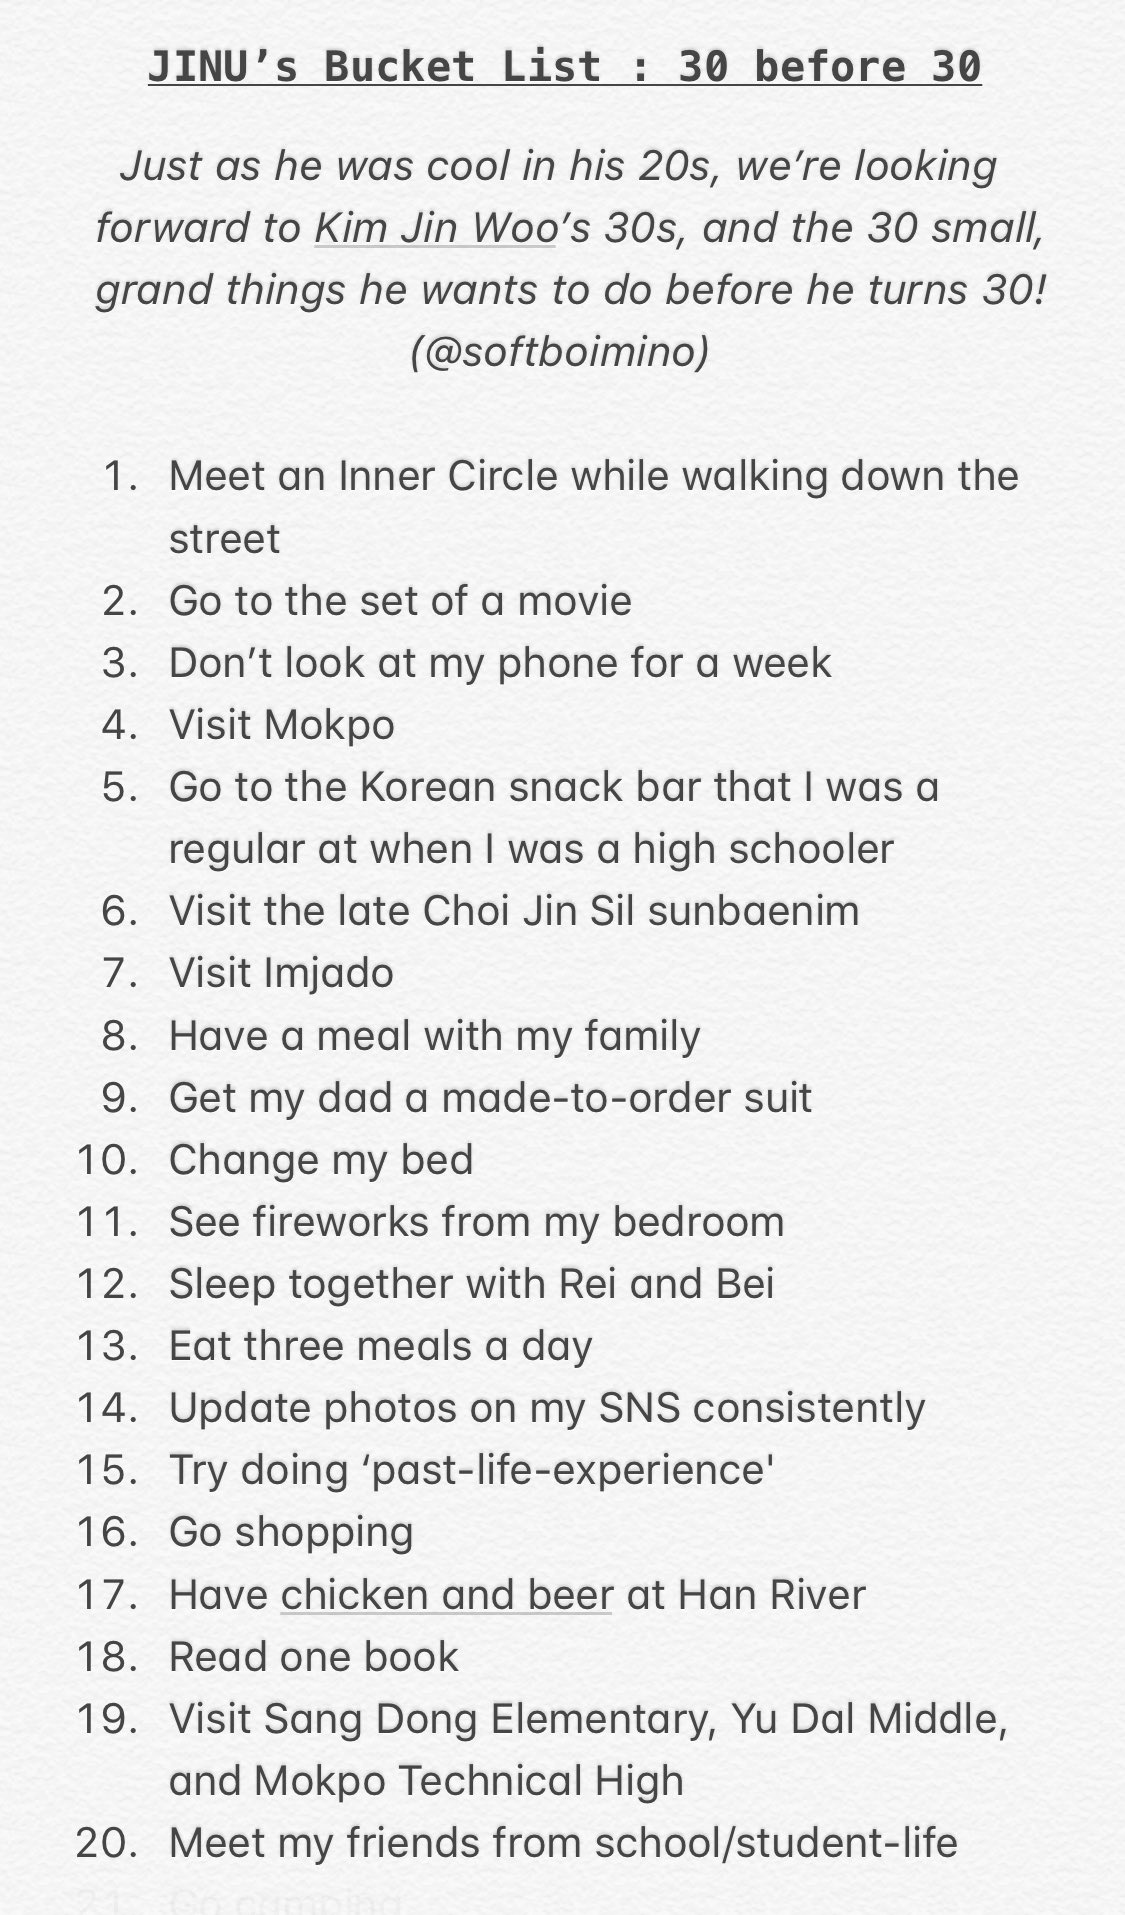 Ava On Twitter Jinu S 30 Before 30 Bucketlist From The Bonus Book In The Jinu S Heyday Album 김진우 Kimjinwoo Call Anytime 또또또